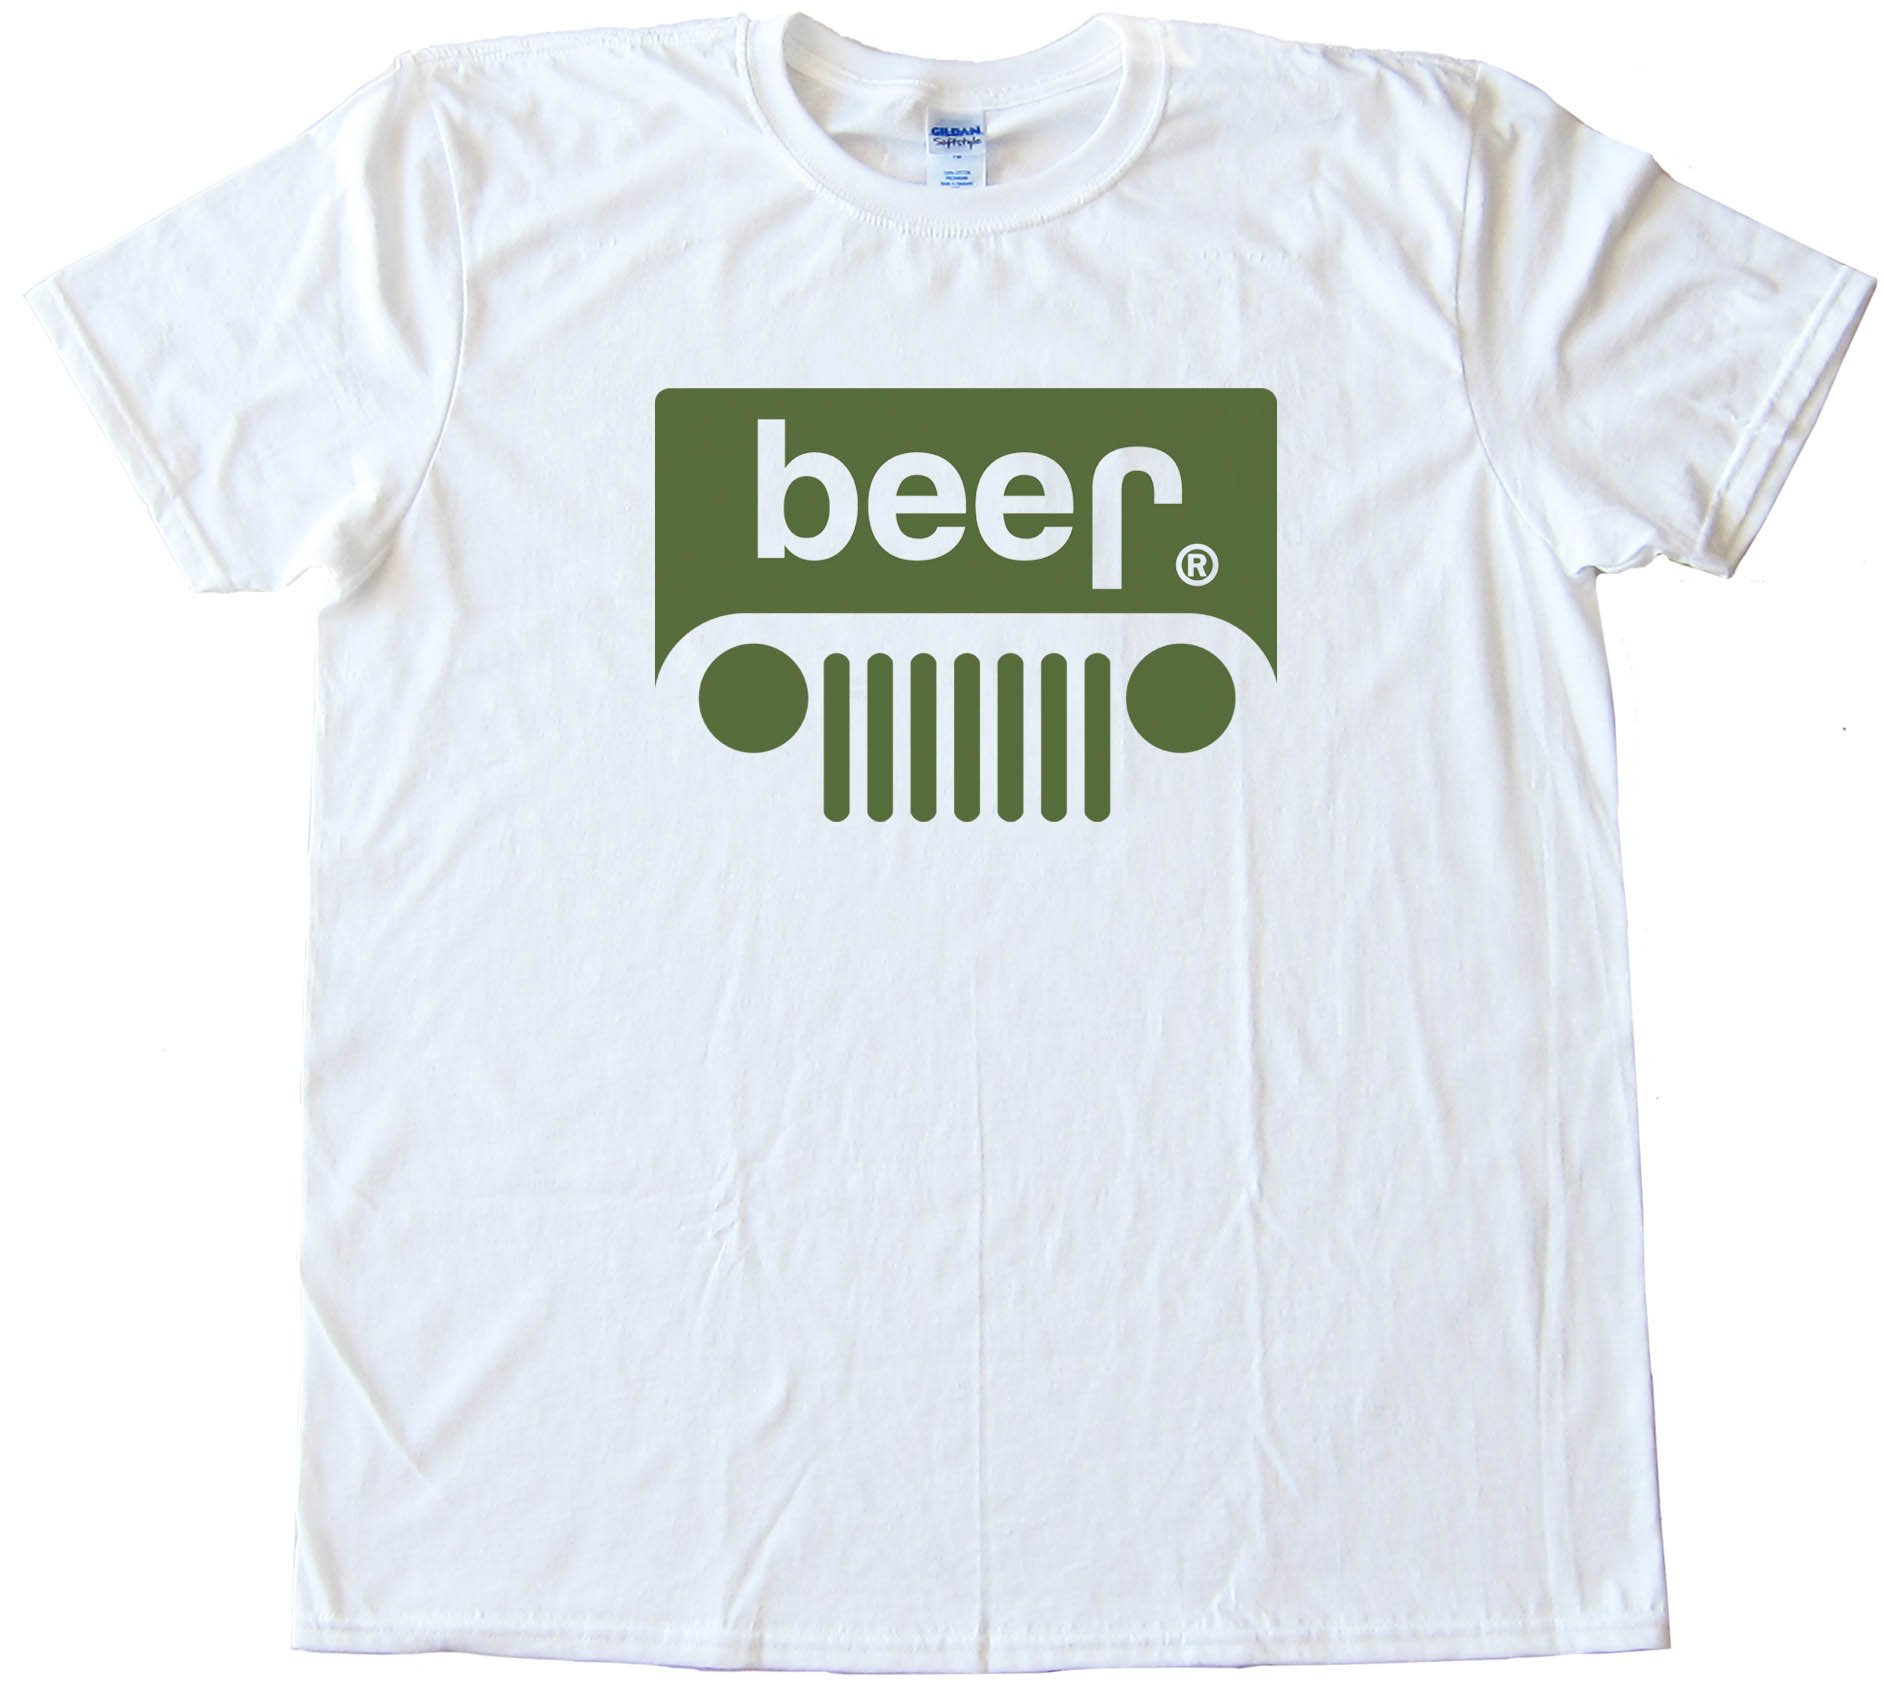 Beer Jeep Logo Tee Shirt